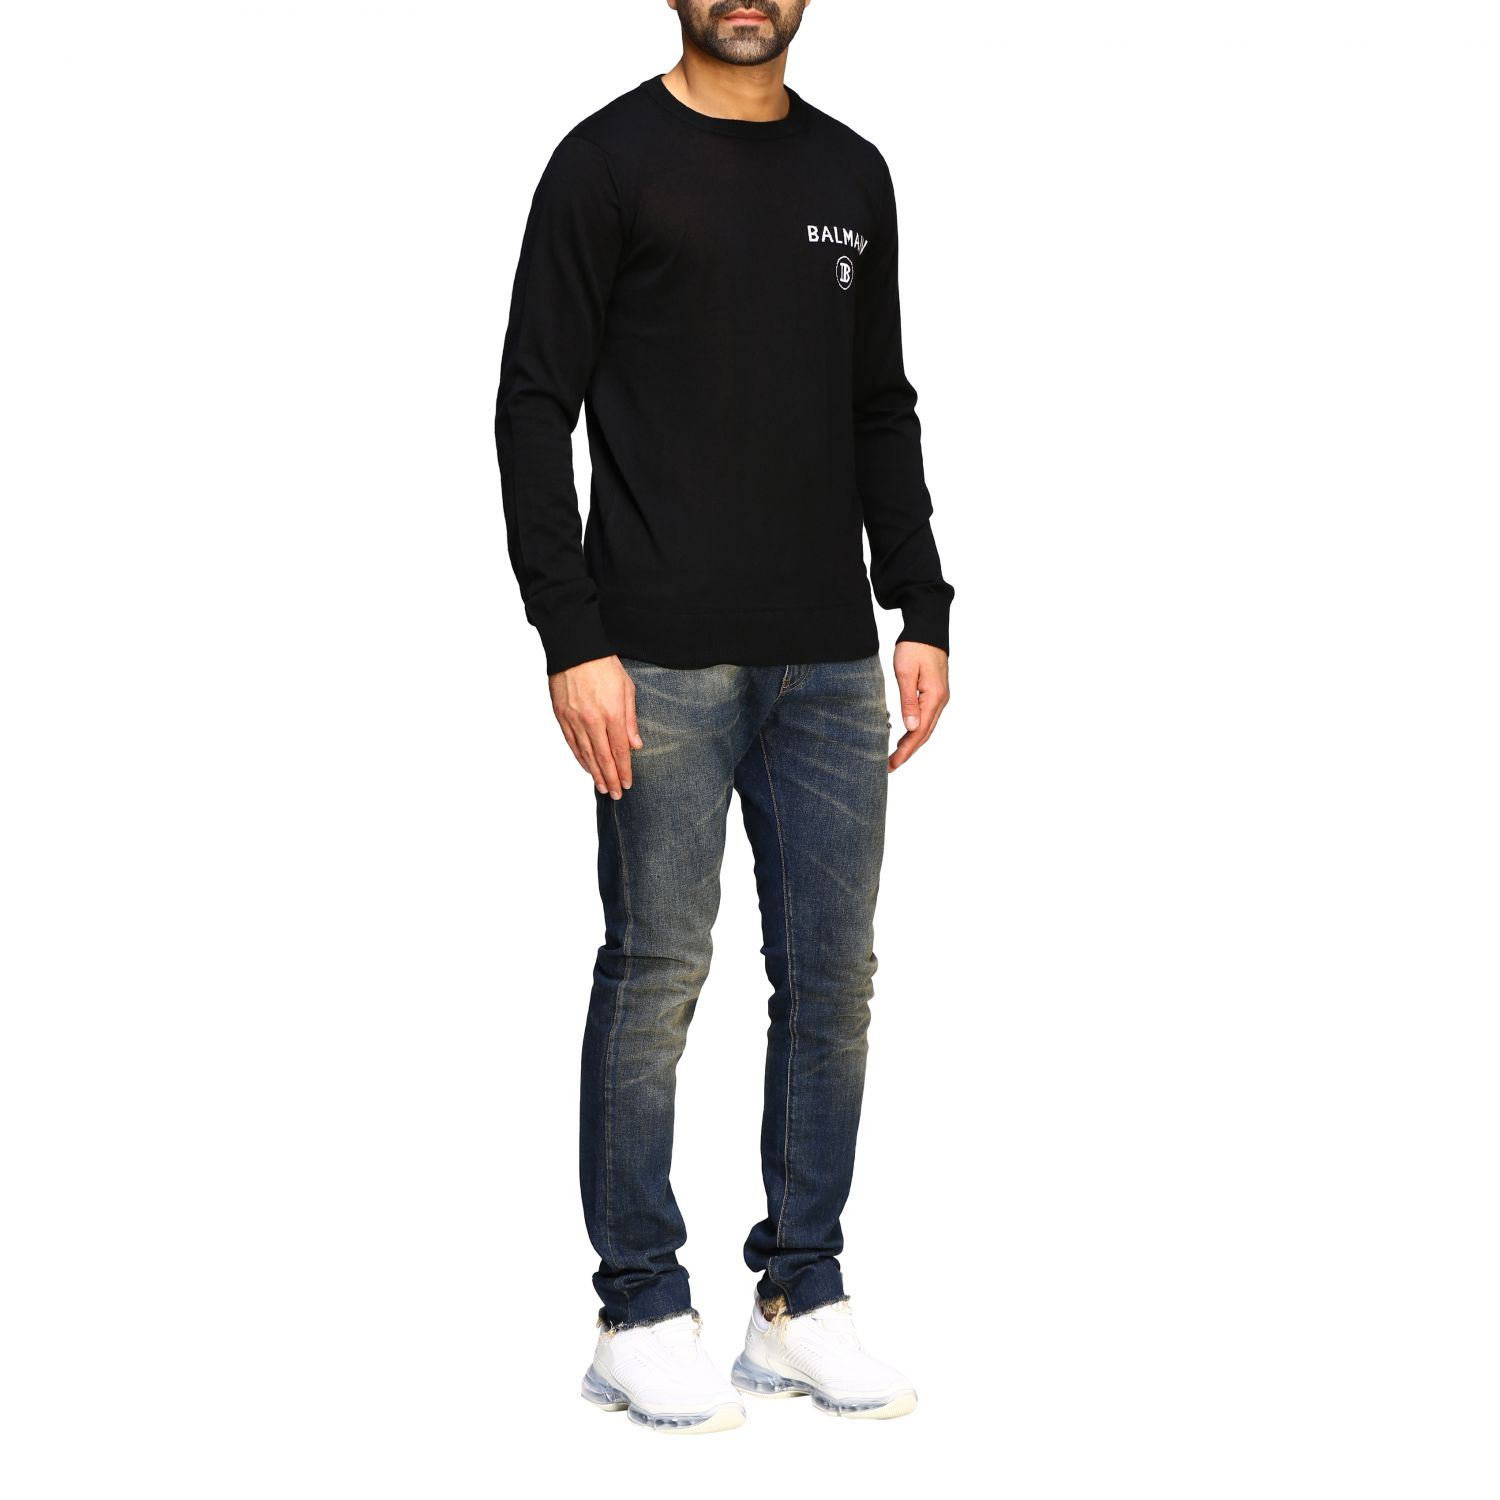 Sweater Balmain: Balmain cashmere crewneck sweater with logo black 2